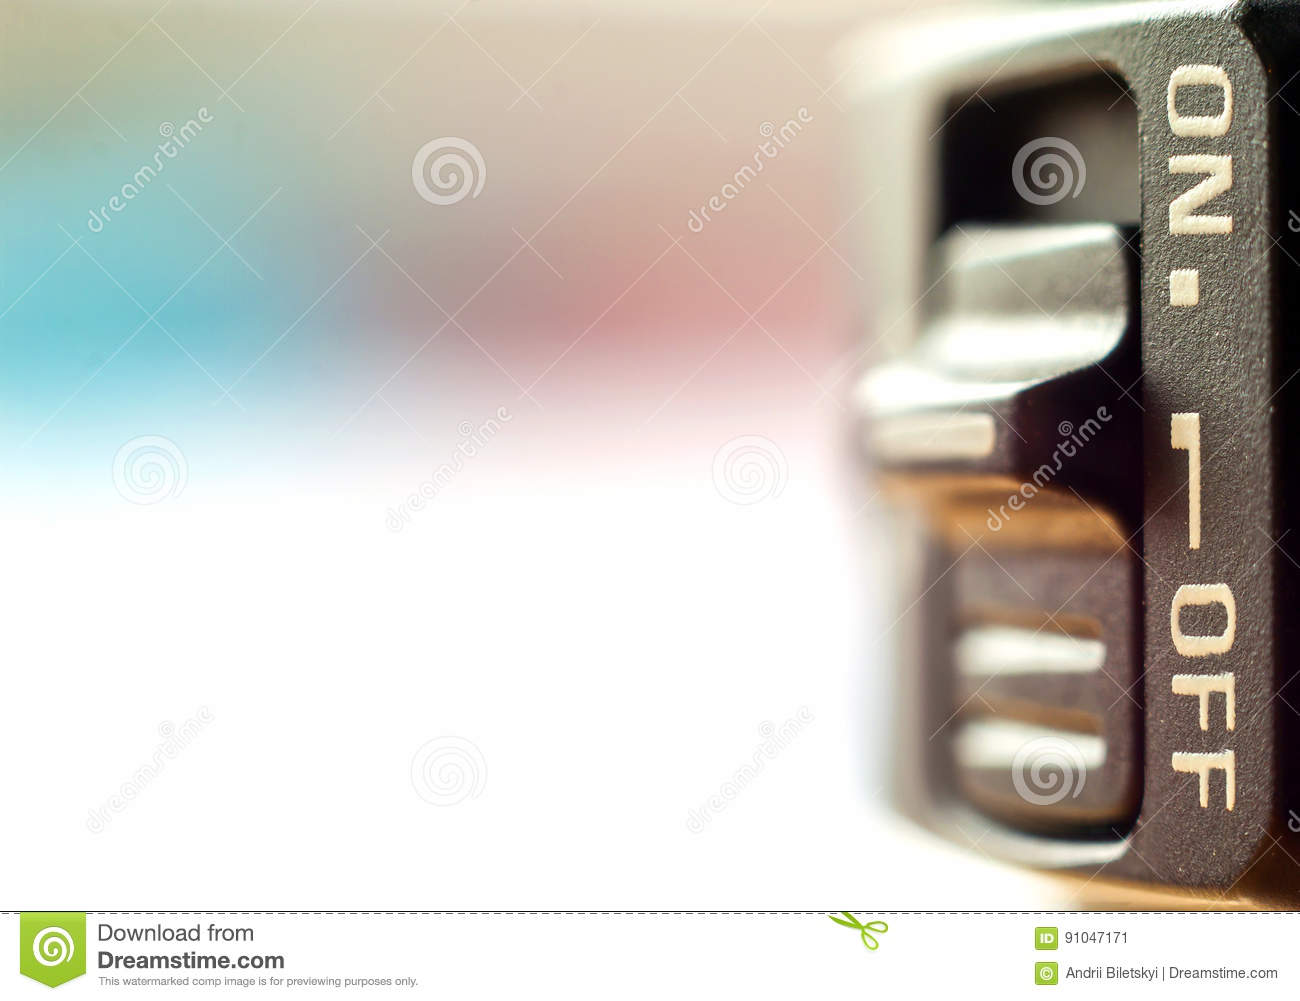 Close-up of little On/Off switch with soft blurred background